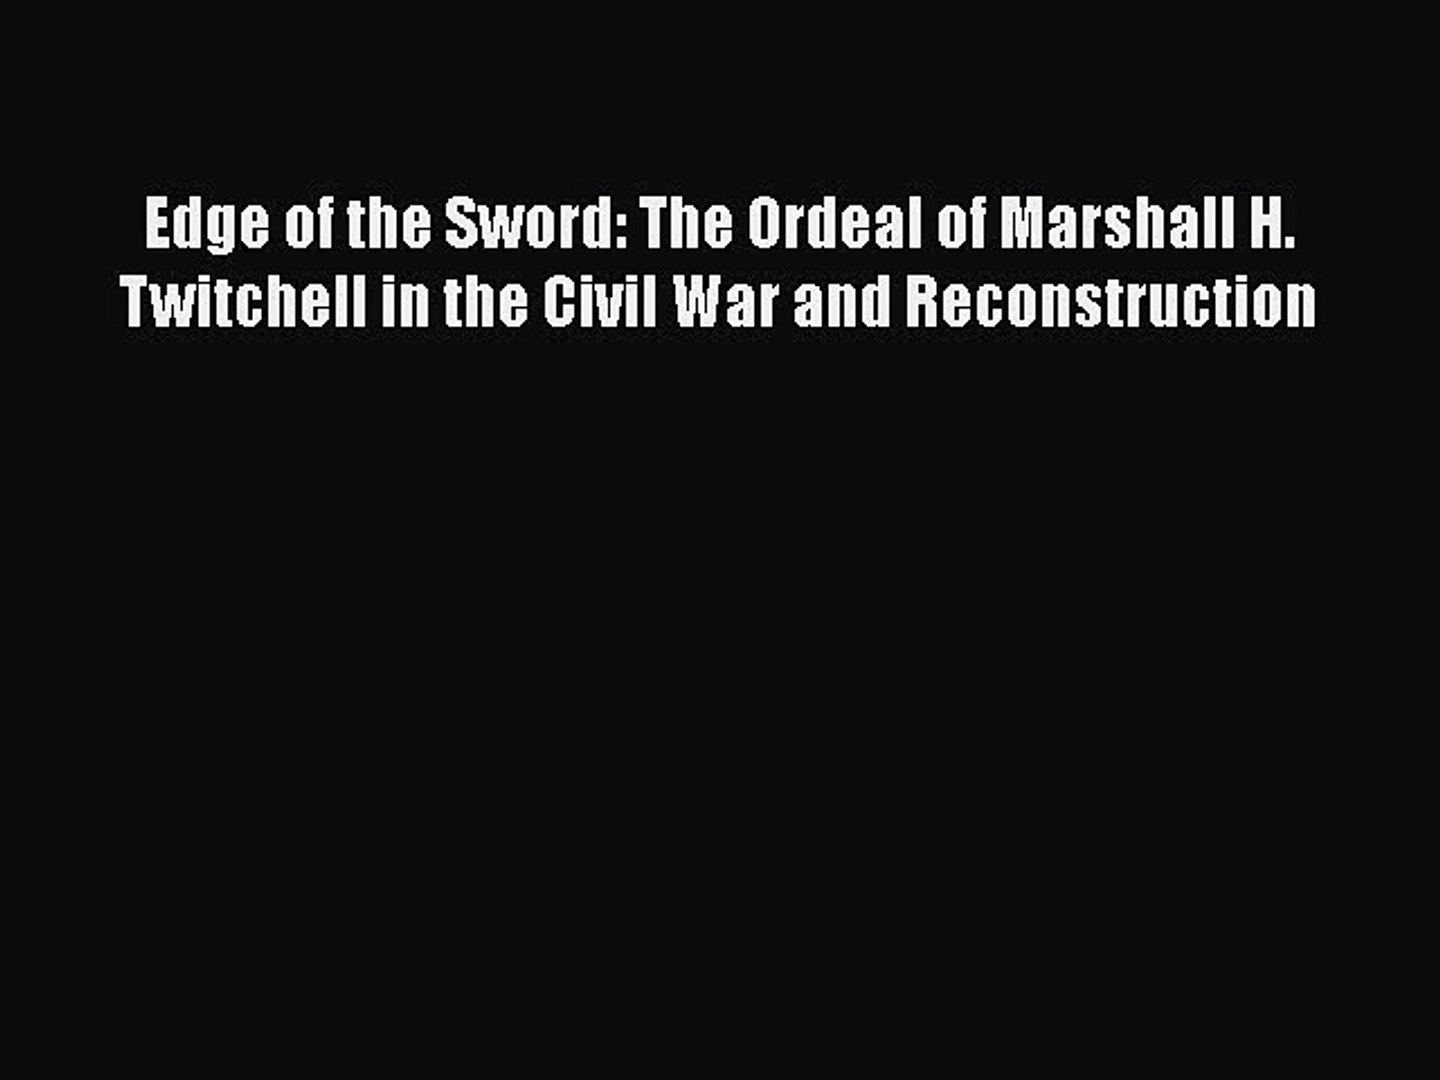 PDF Edge of the Sword: The Ordeal of Marshall H. Twitchell in the Civil War and Reconstruction